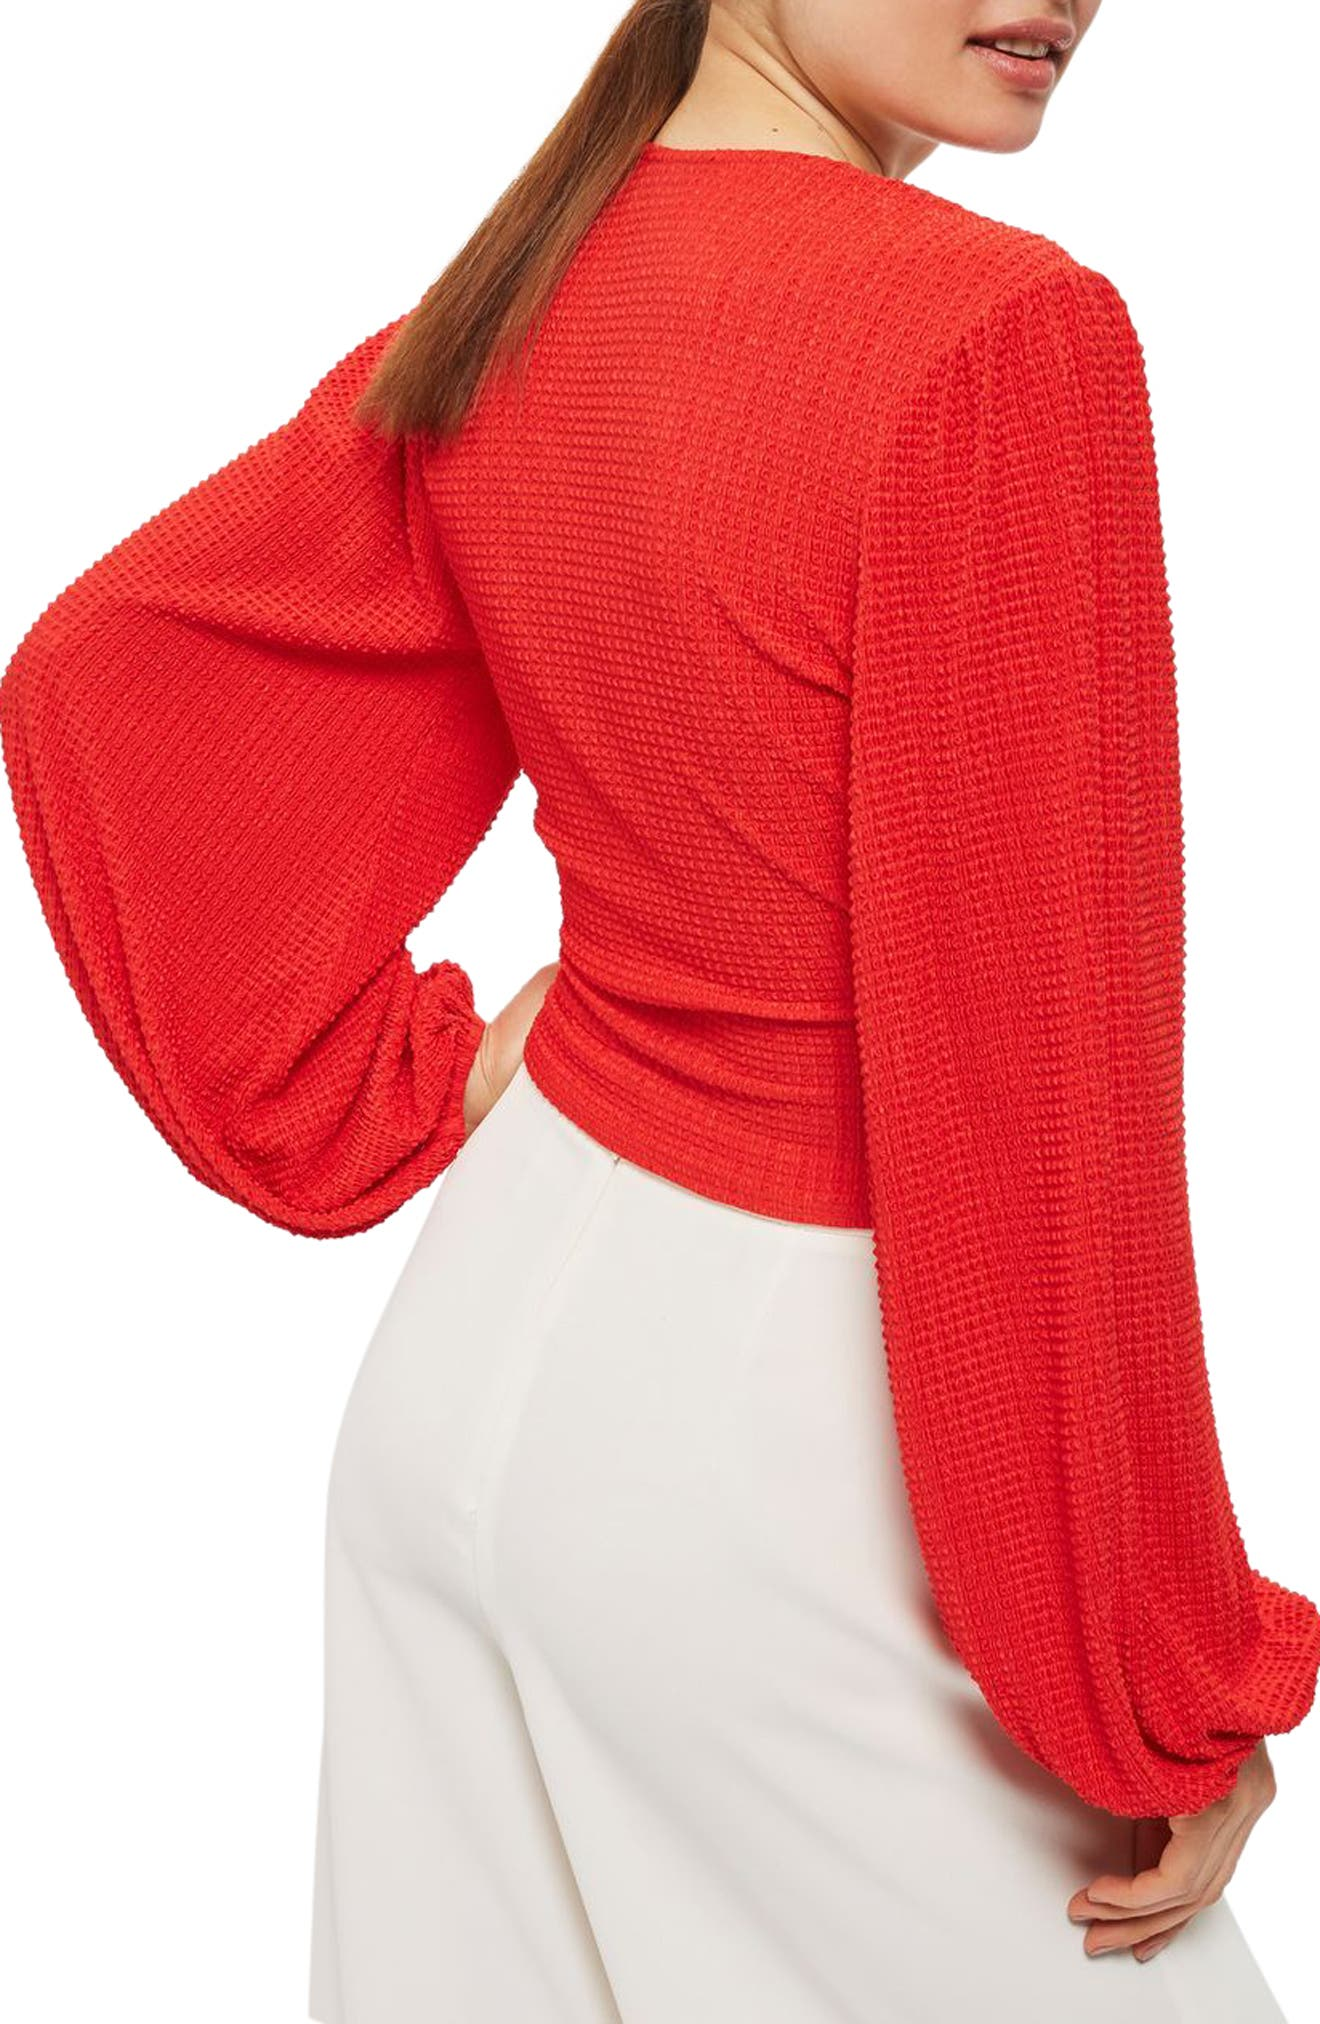 Blouson Sleeve Textured Wrap Top,                             Alternate thumbnail 2, color,                             Red